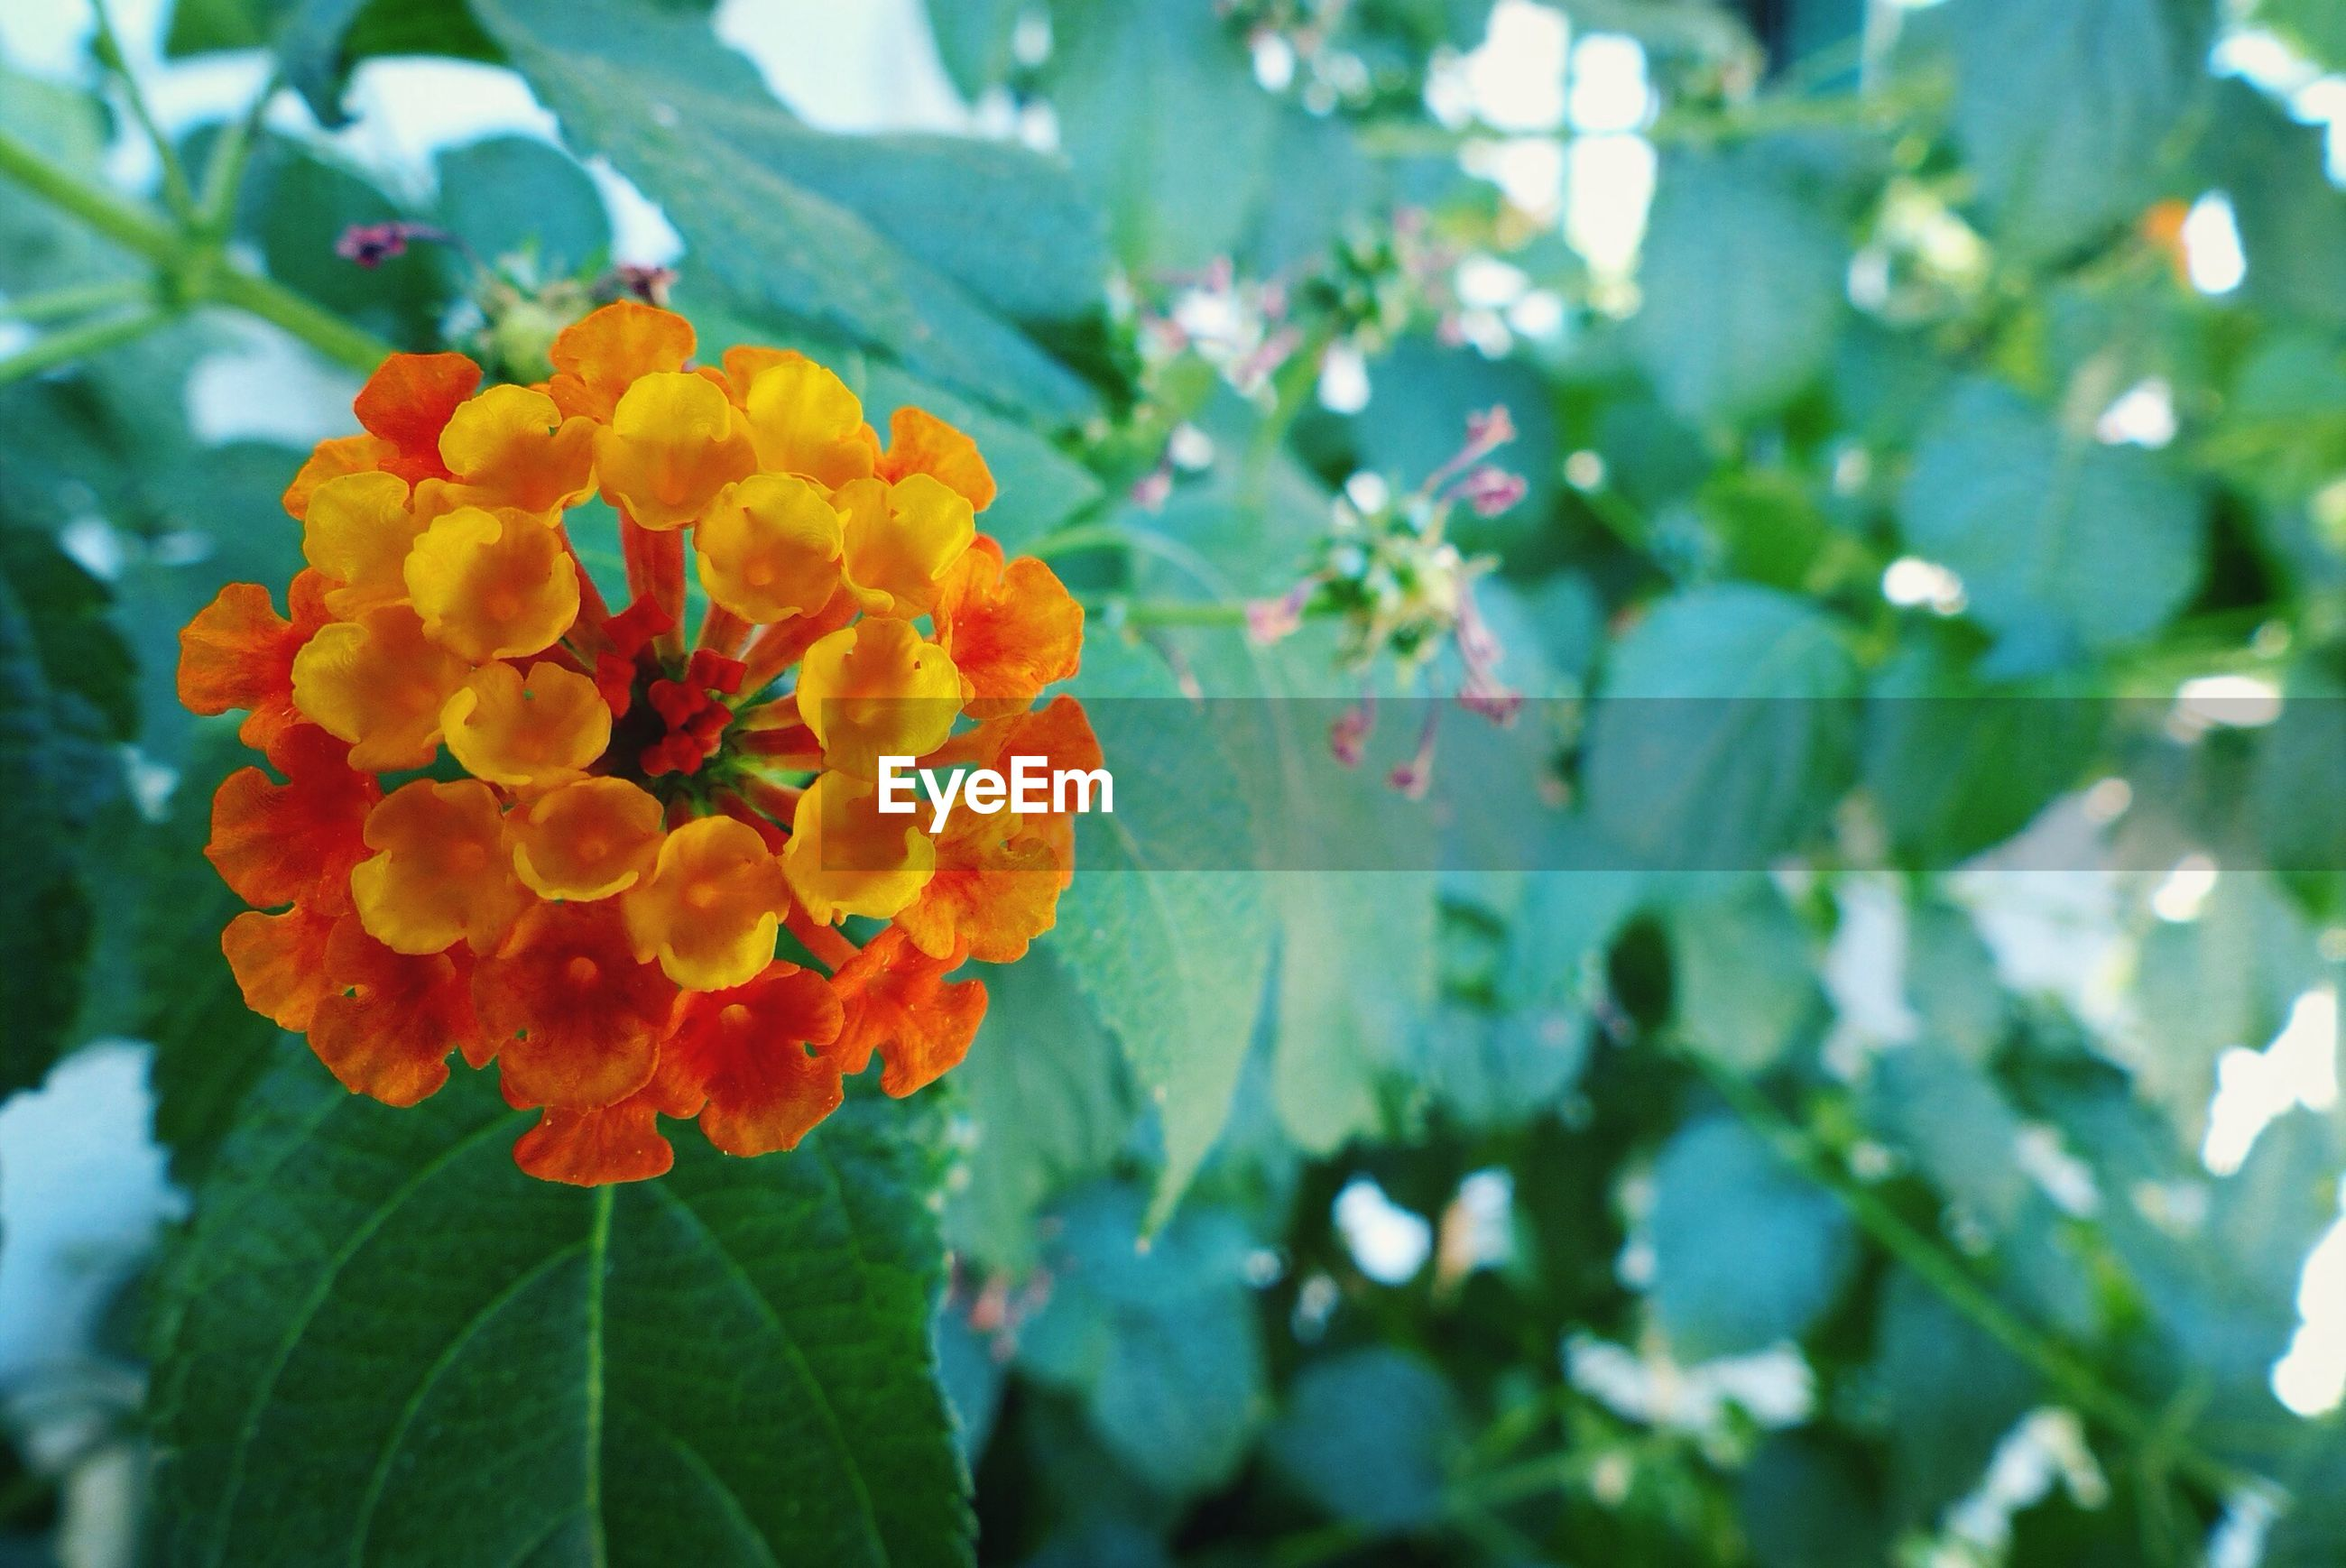 flower, freshness, petal, fragility, growth, flower head, focus on foreground, beauty in nature, leaf, blooming, close-up, nature, plant, in bloom, orange color, blossom, day, red, outdoors, park - man made space